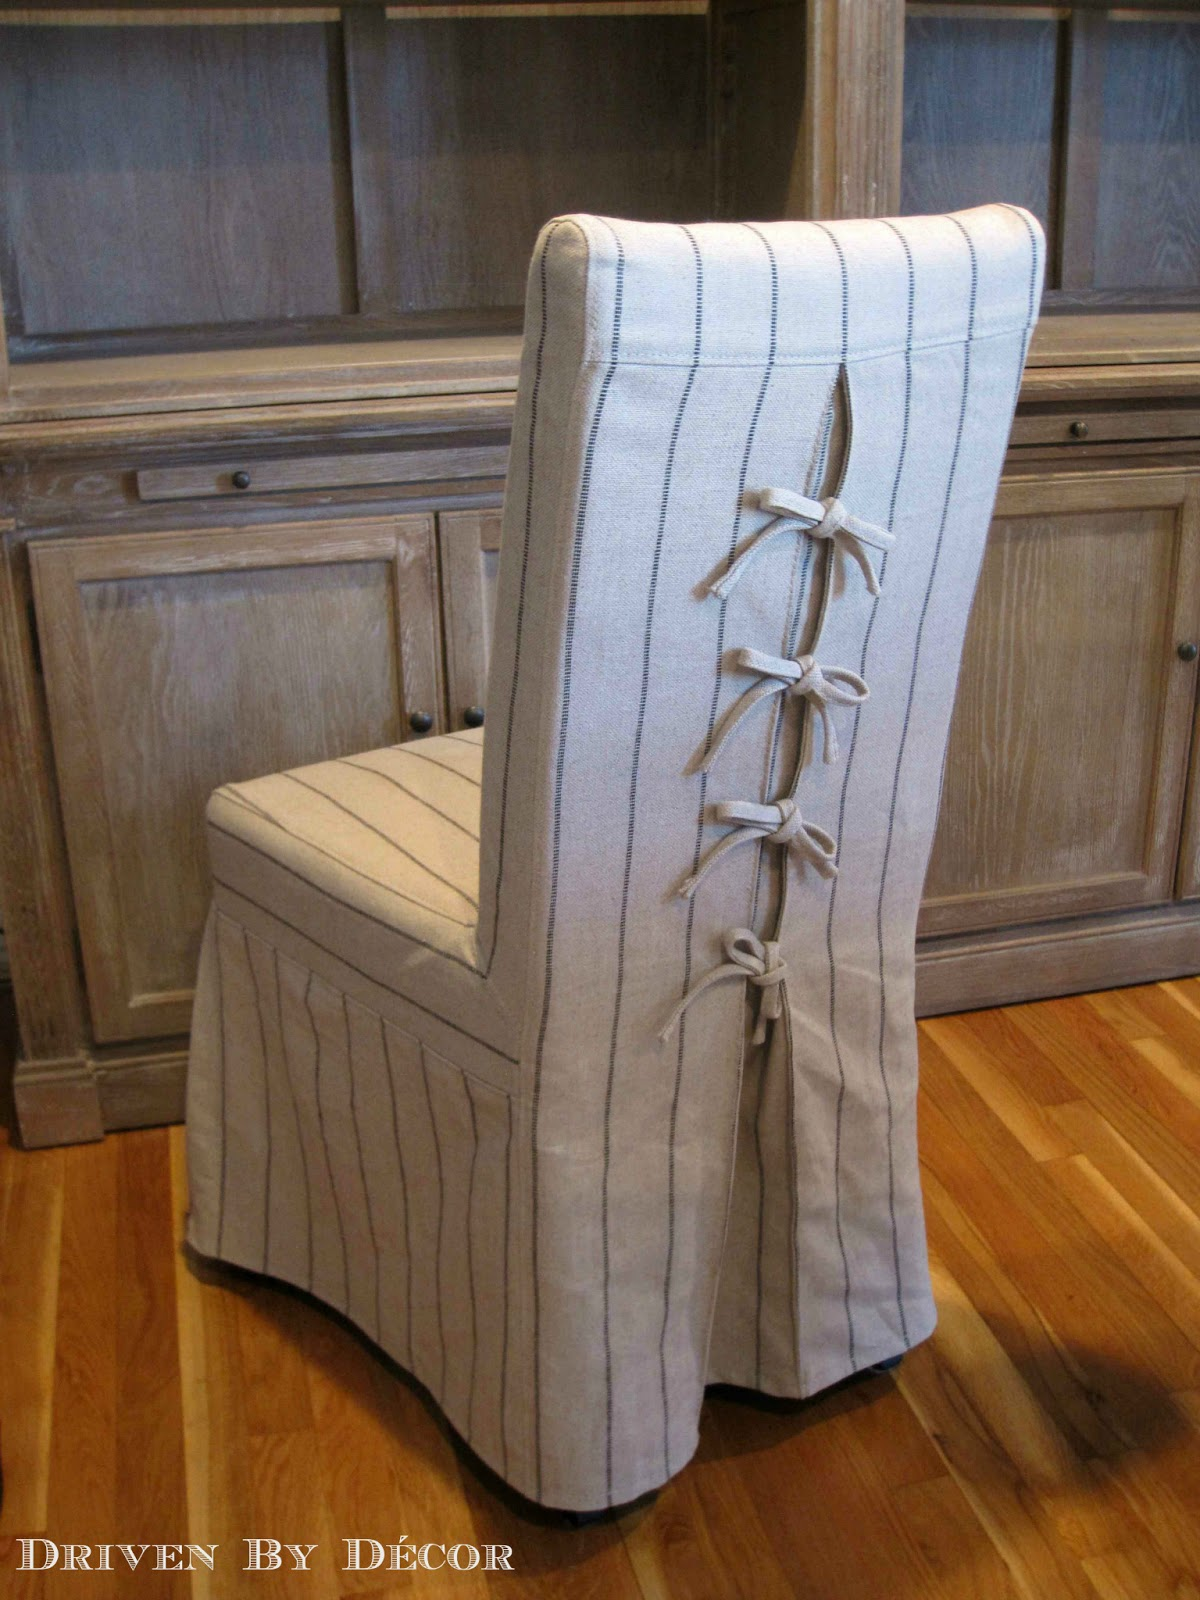 Driven By Décor: Dress Up Your Dining Chairs: Corseted Slipcovers